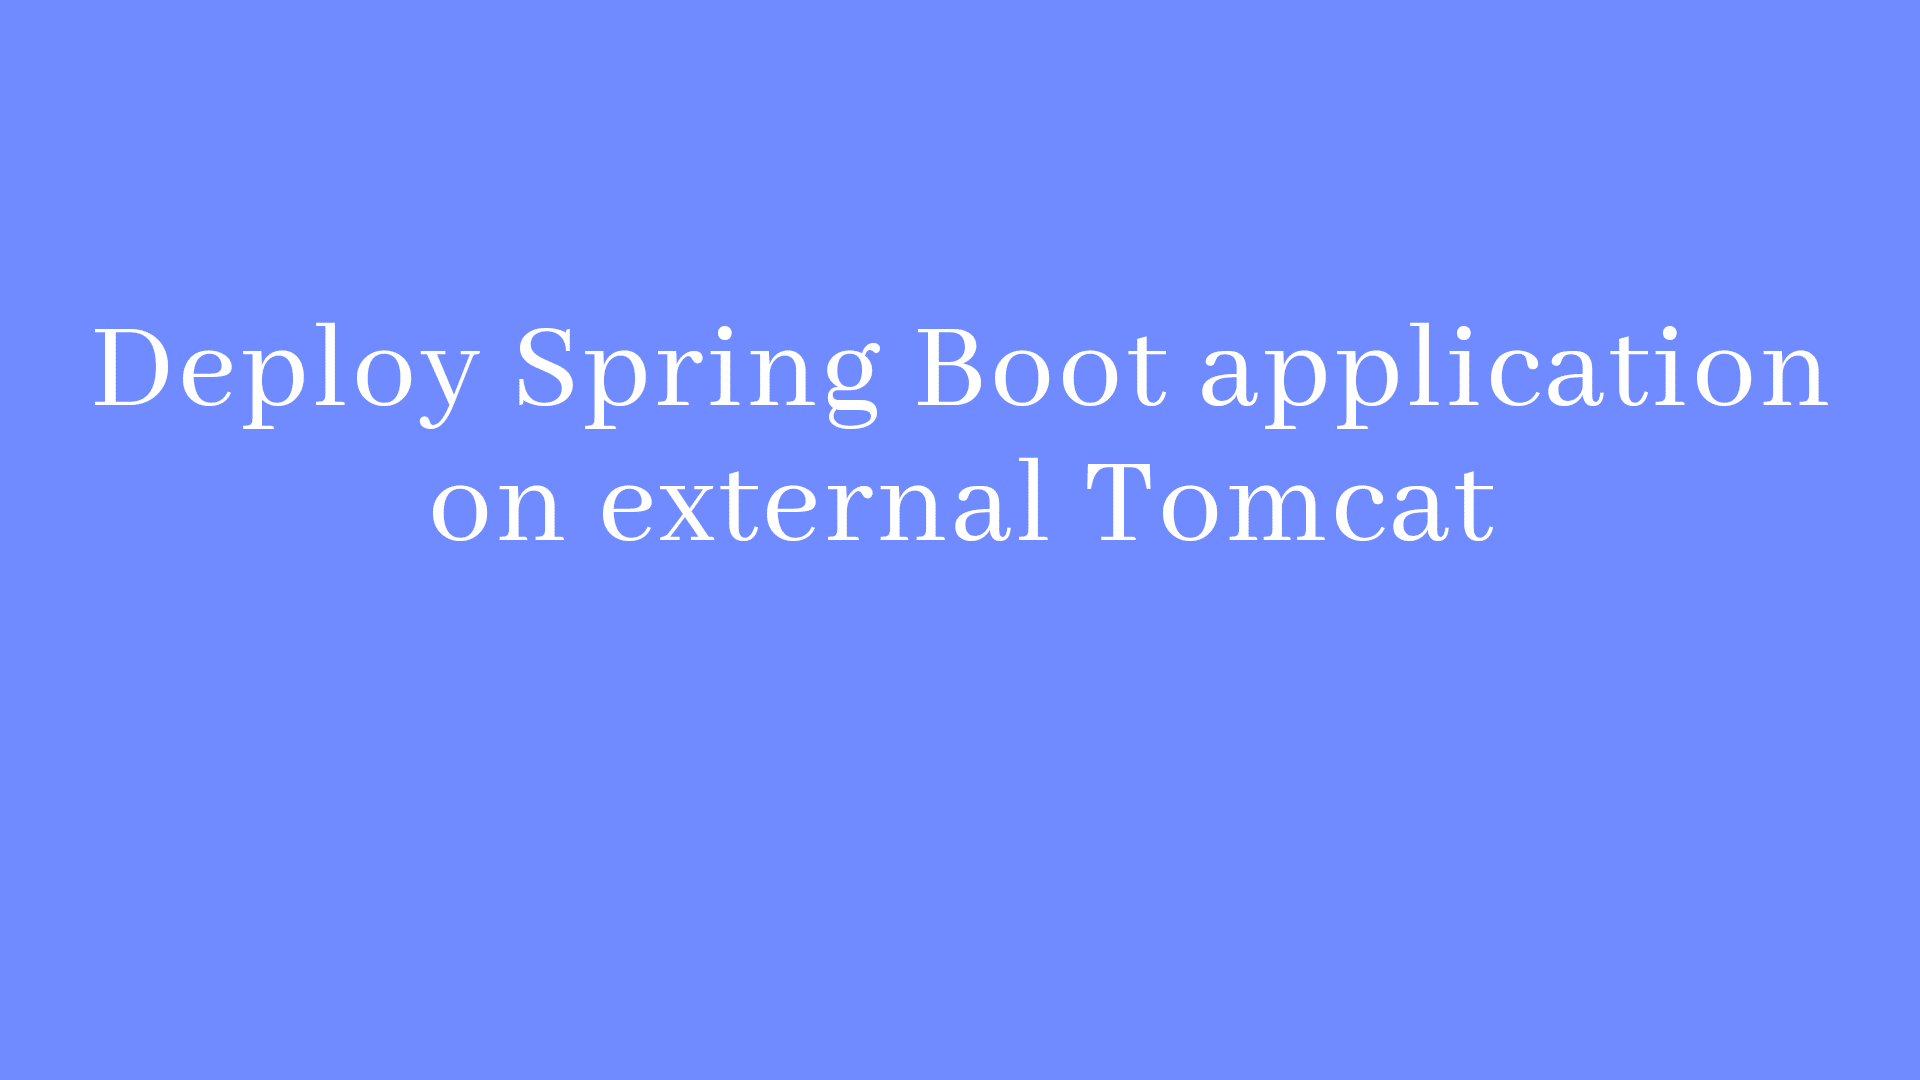 Deploy Spring Boot application on external Tomcat